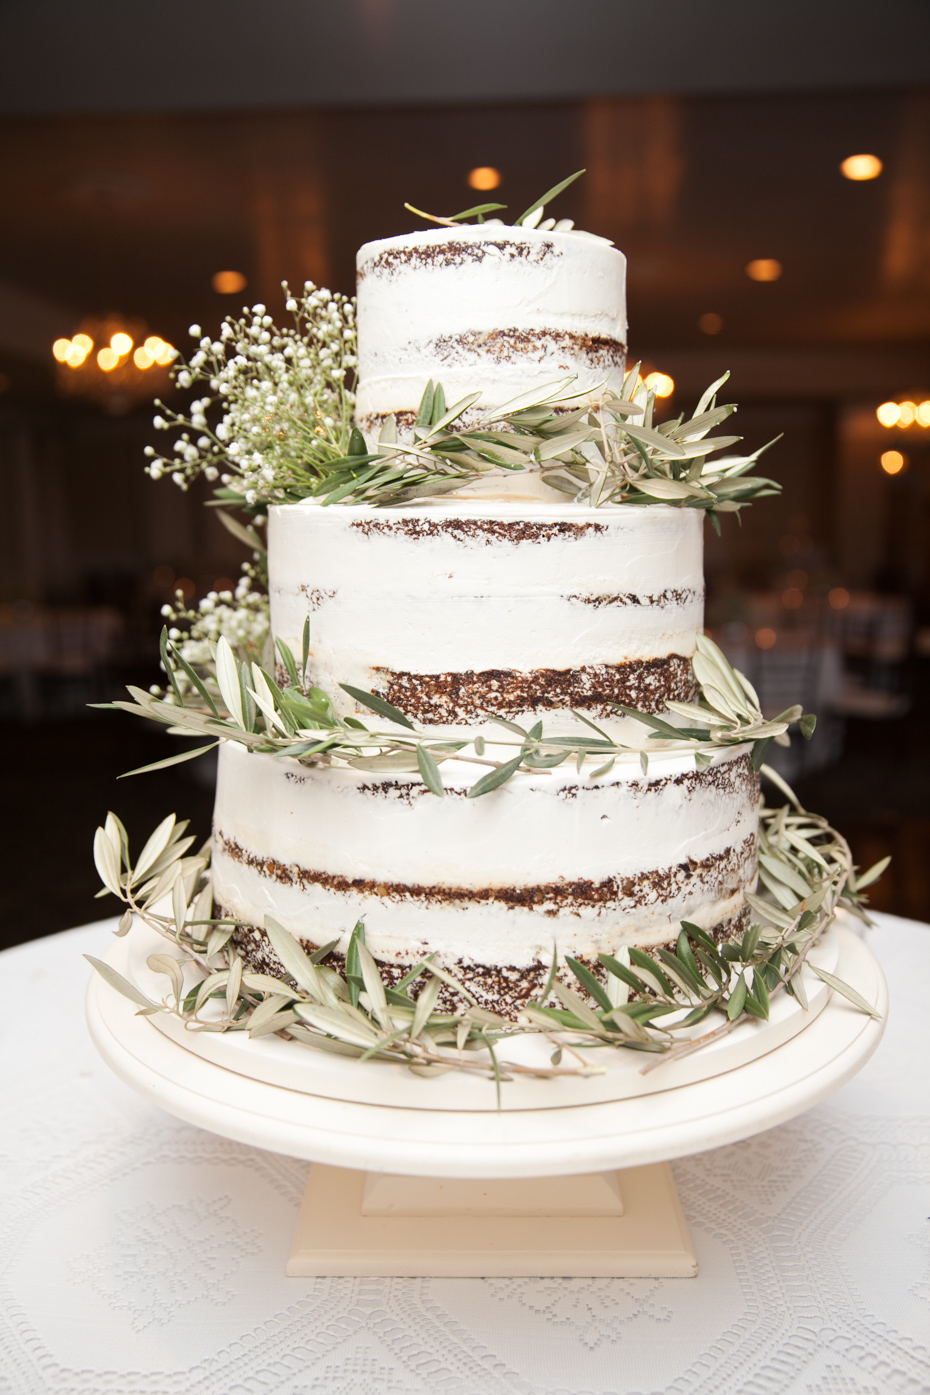 Naked wedding cake with greenery